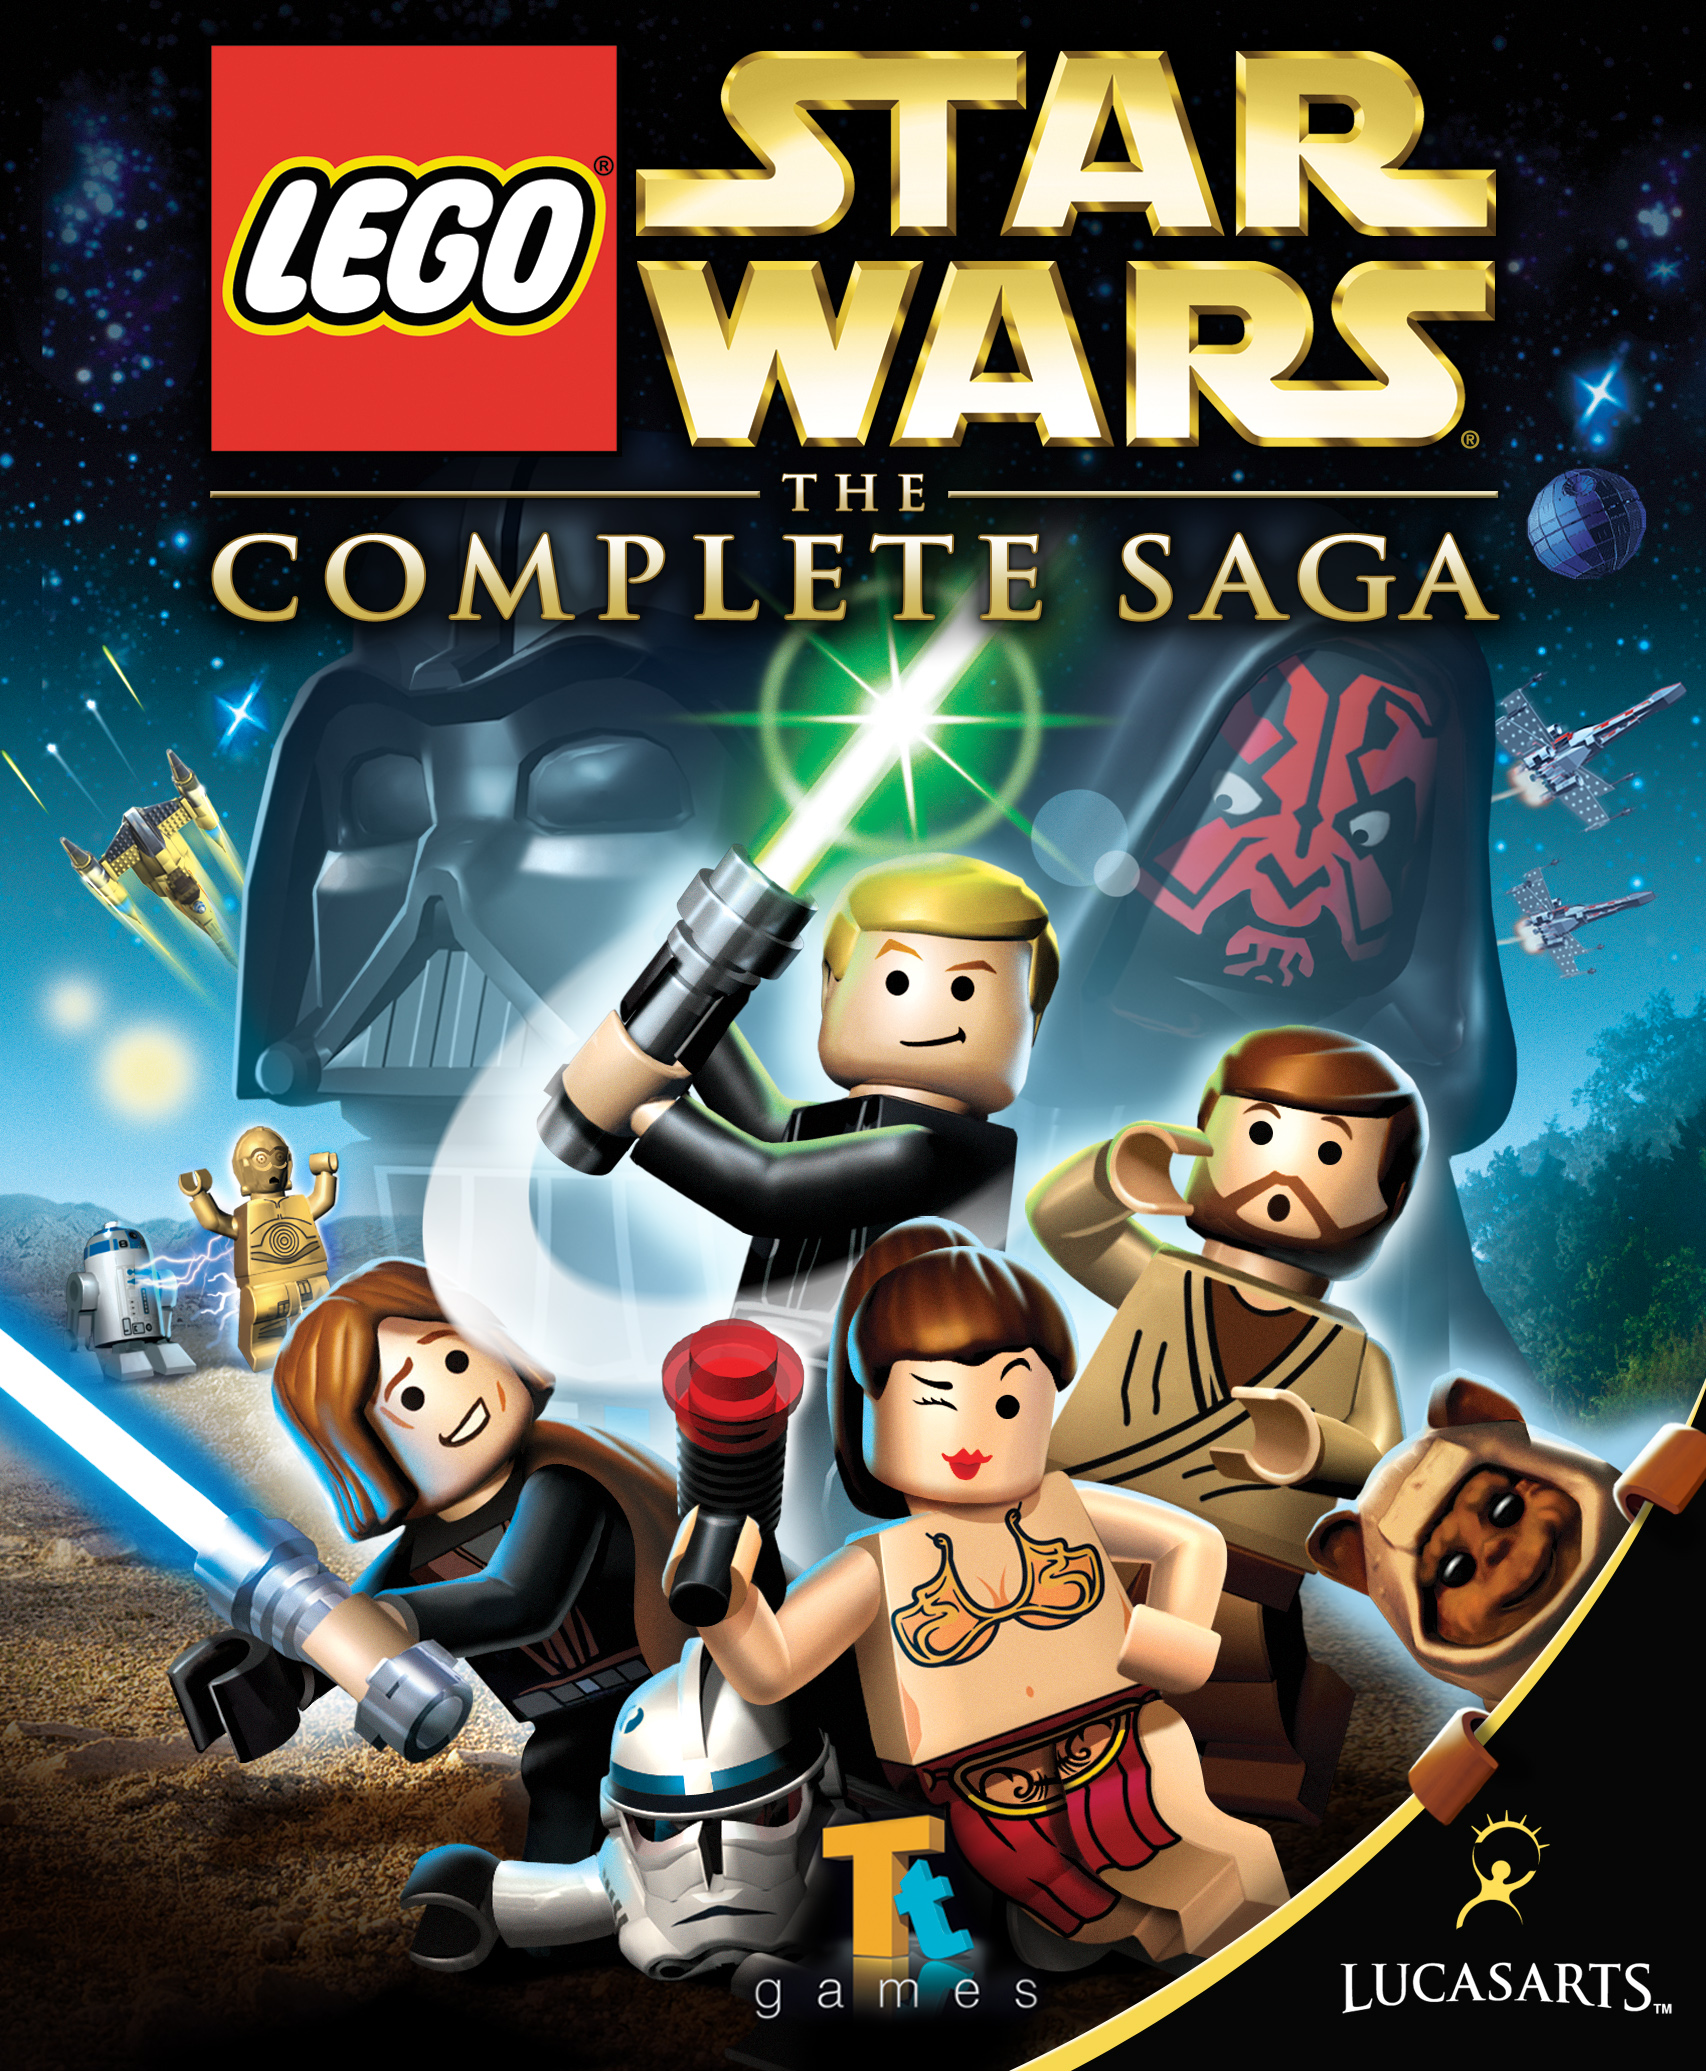 Lego star wars anakin skywalker clone wars others png download.